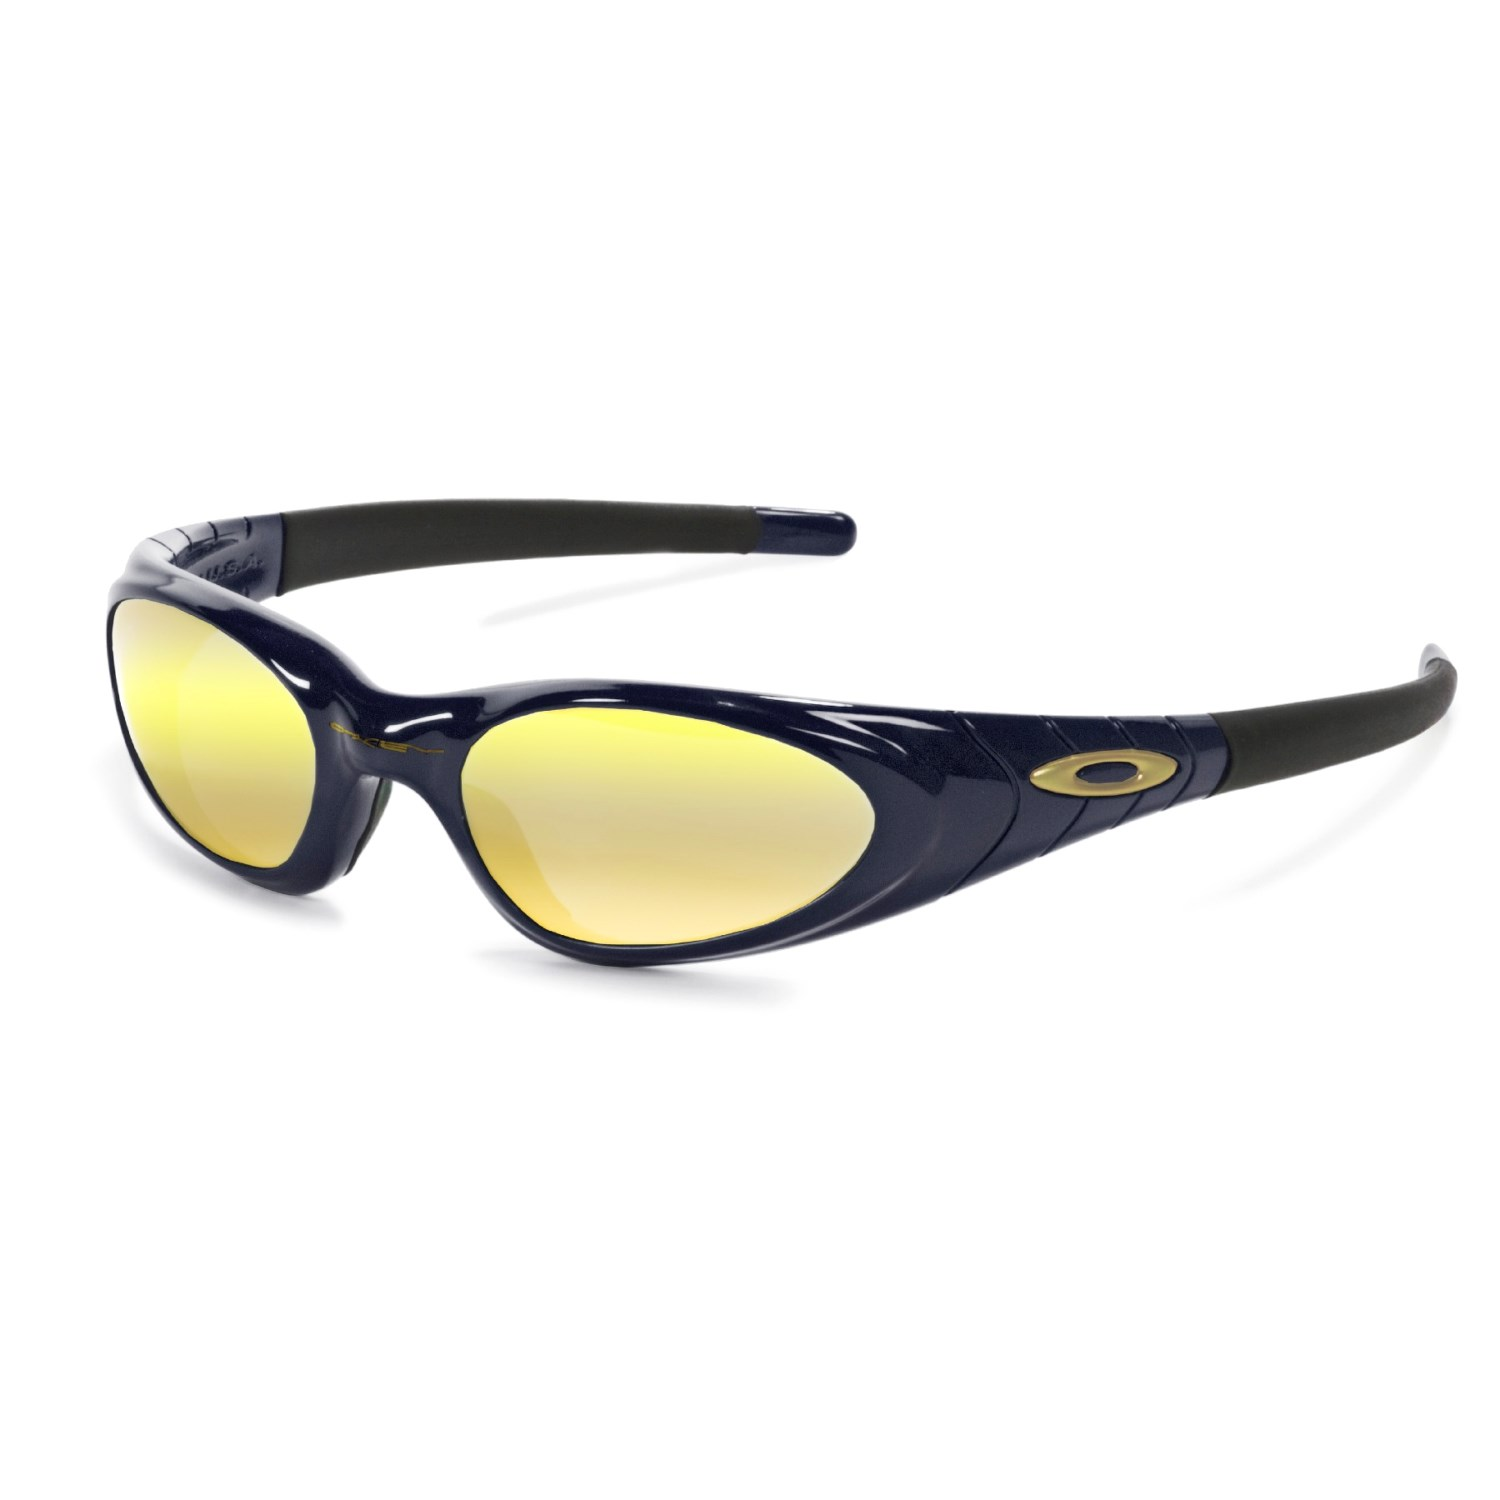 0a950a4deb Oakley Sunglasses - Eye Jacket 2.0 76800 - Save 66%